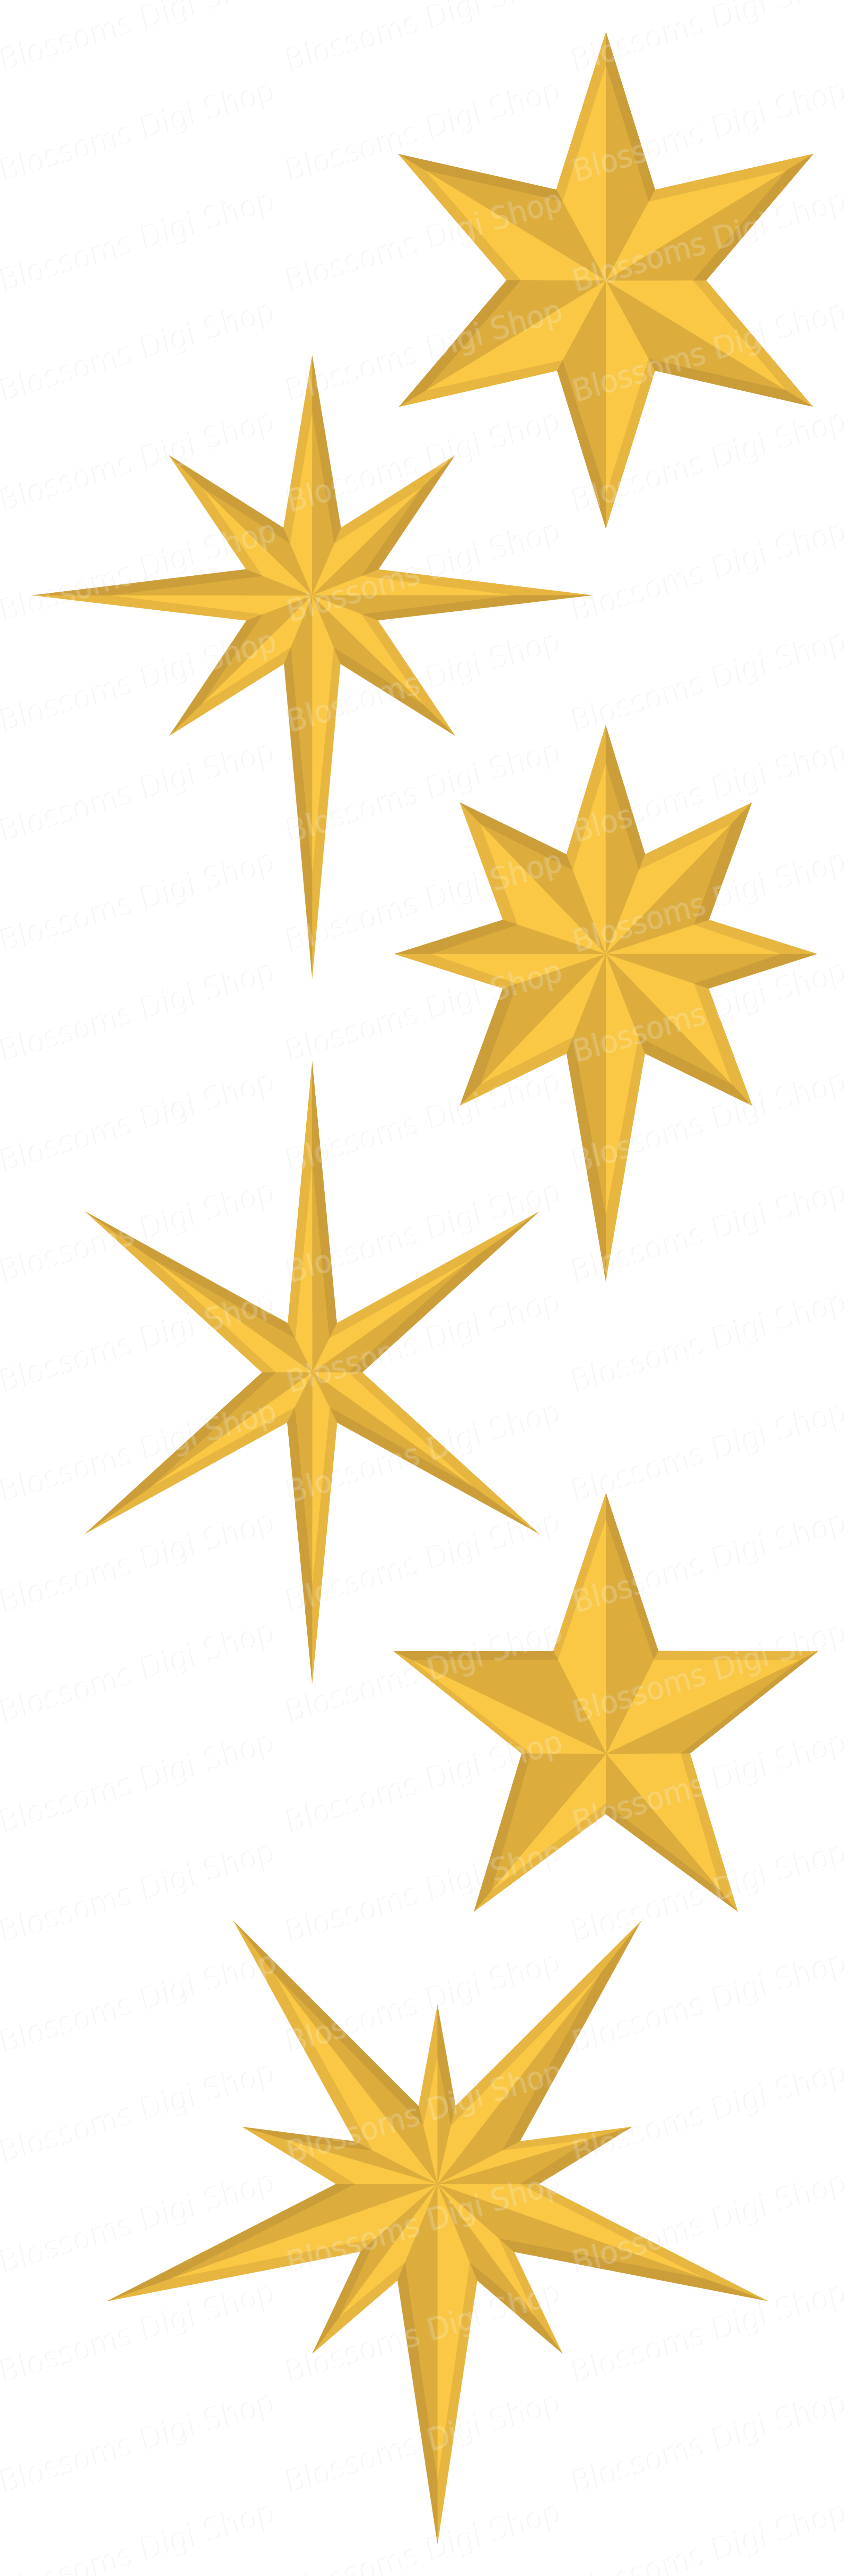 Christmas stars clipart, gold star clipart, star elements